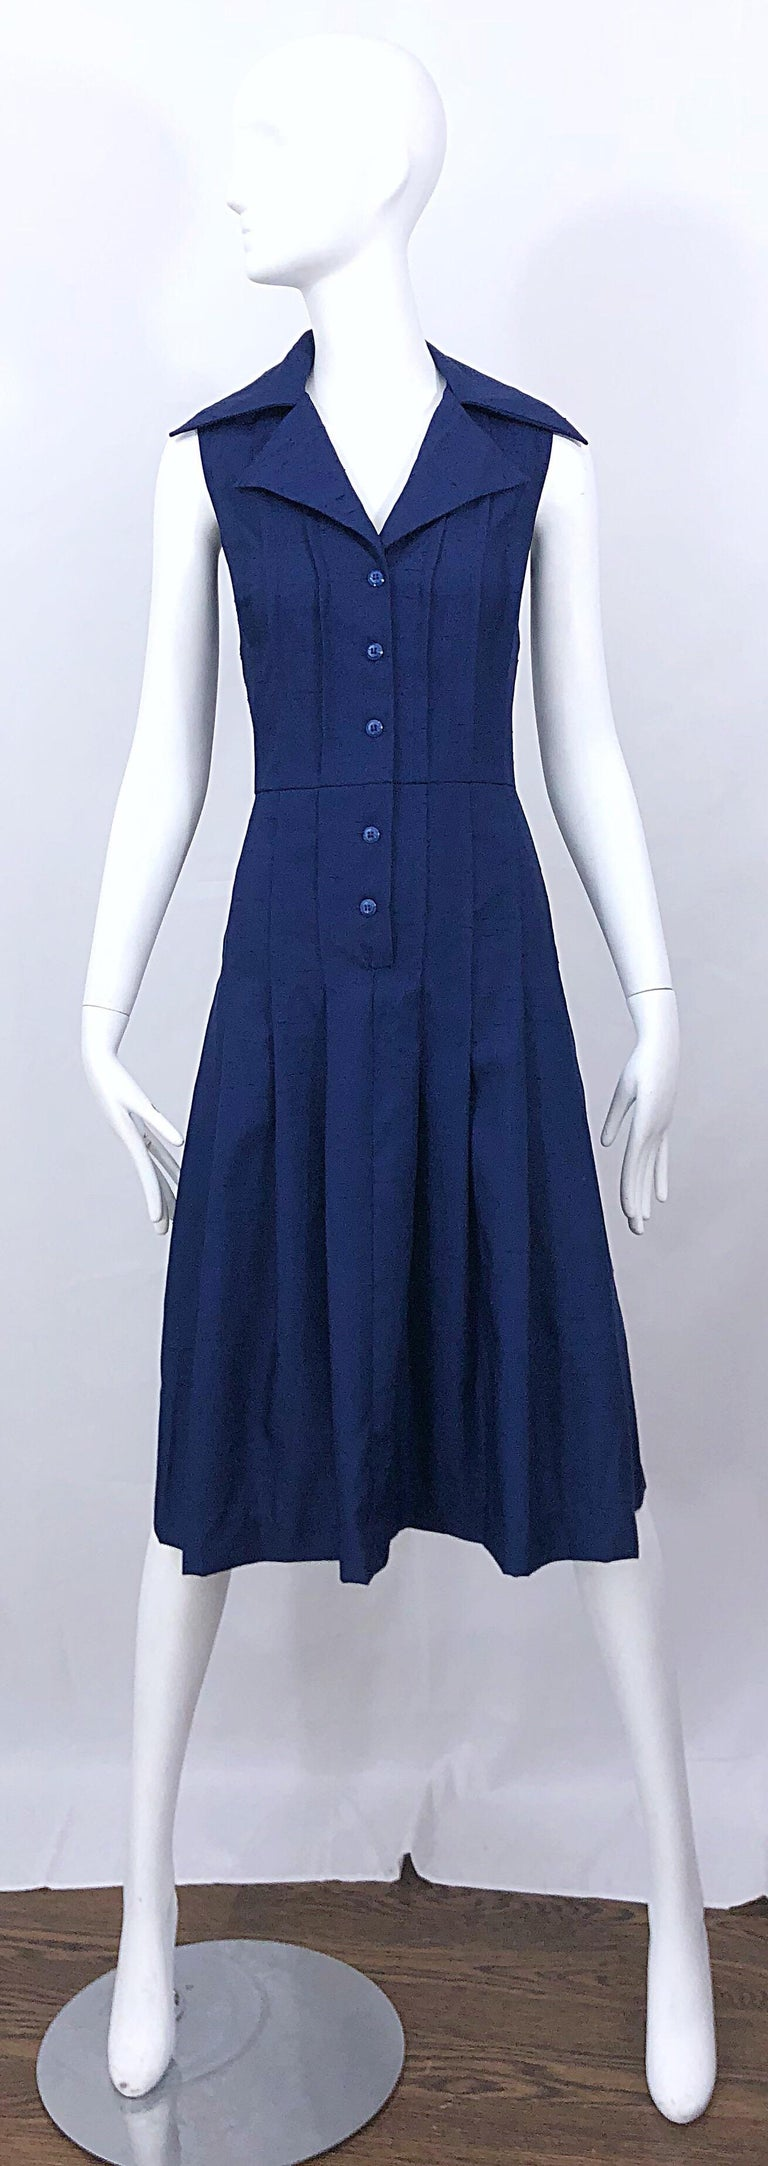 Chic beuatiful early 90s SAKS 5TH AVE. navy blue size 10 sleeveless silk fit n' flare shirt dress! Buttons up the bodice. 1950s style with a fitted bodice and a forgiving full skirt. Avant Garde oversized pointed collar. The perfect dress that can